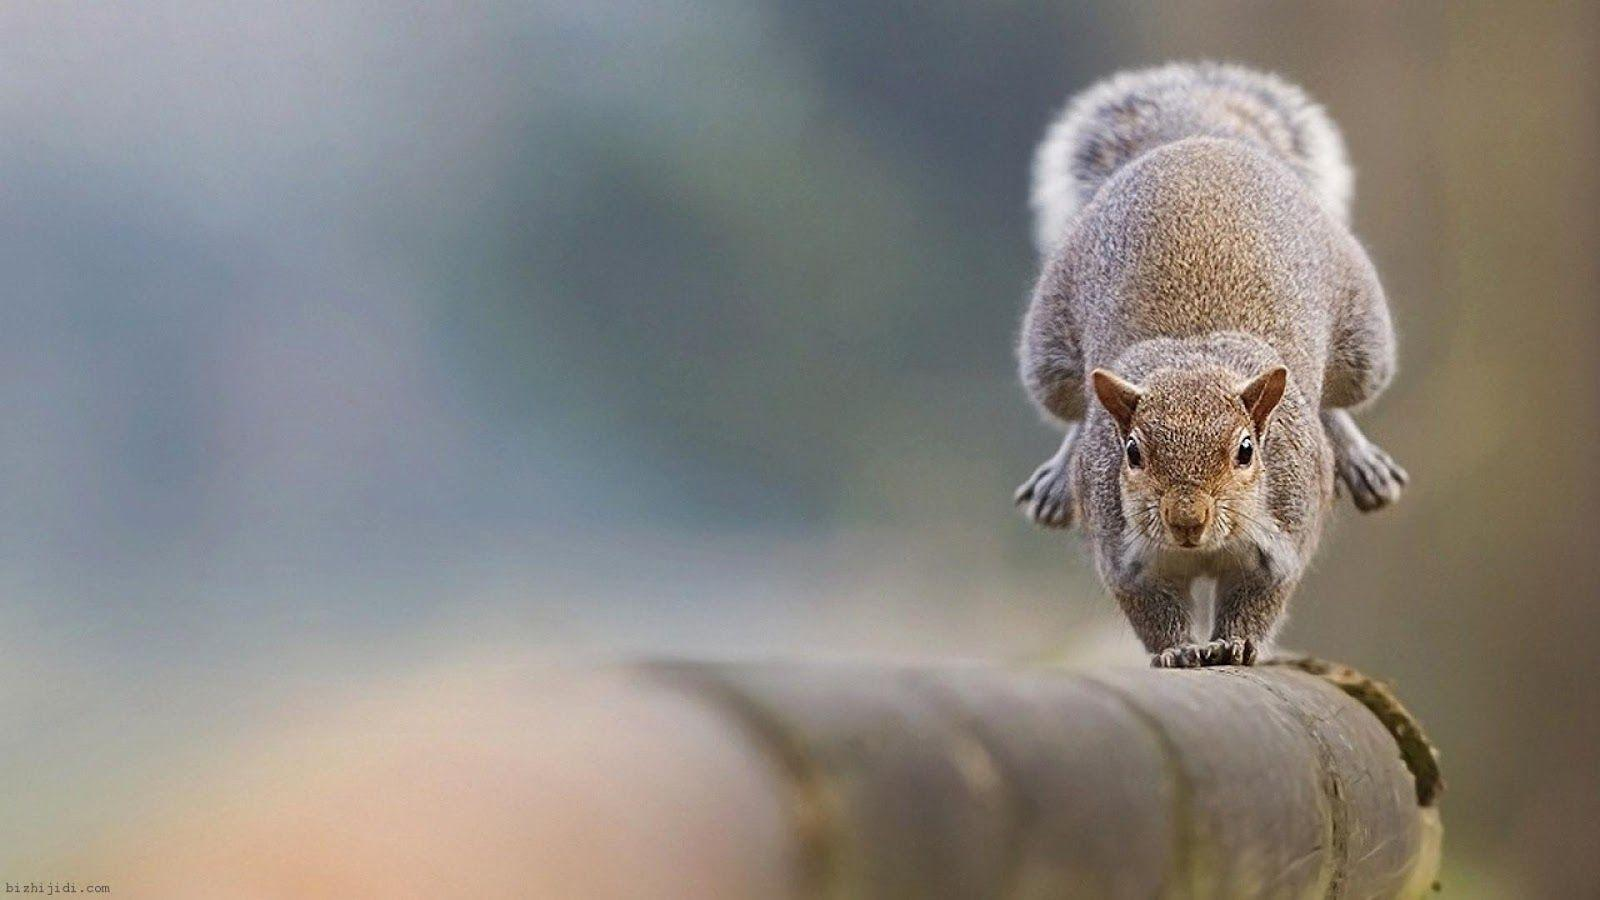 Your Wallpaper: Squirrel Wallpapers